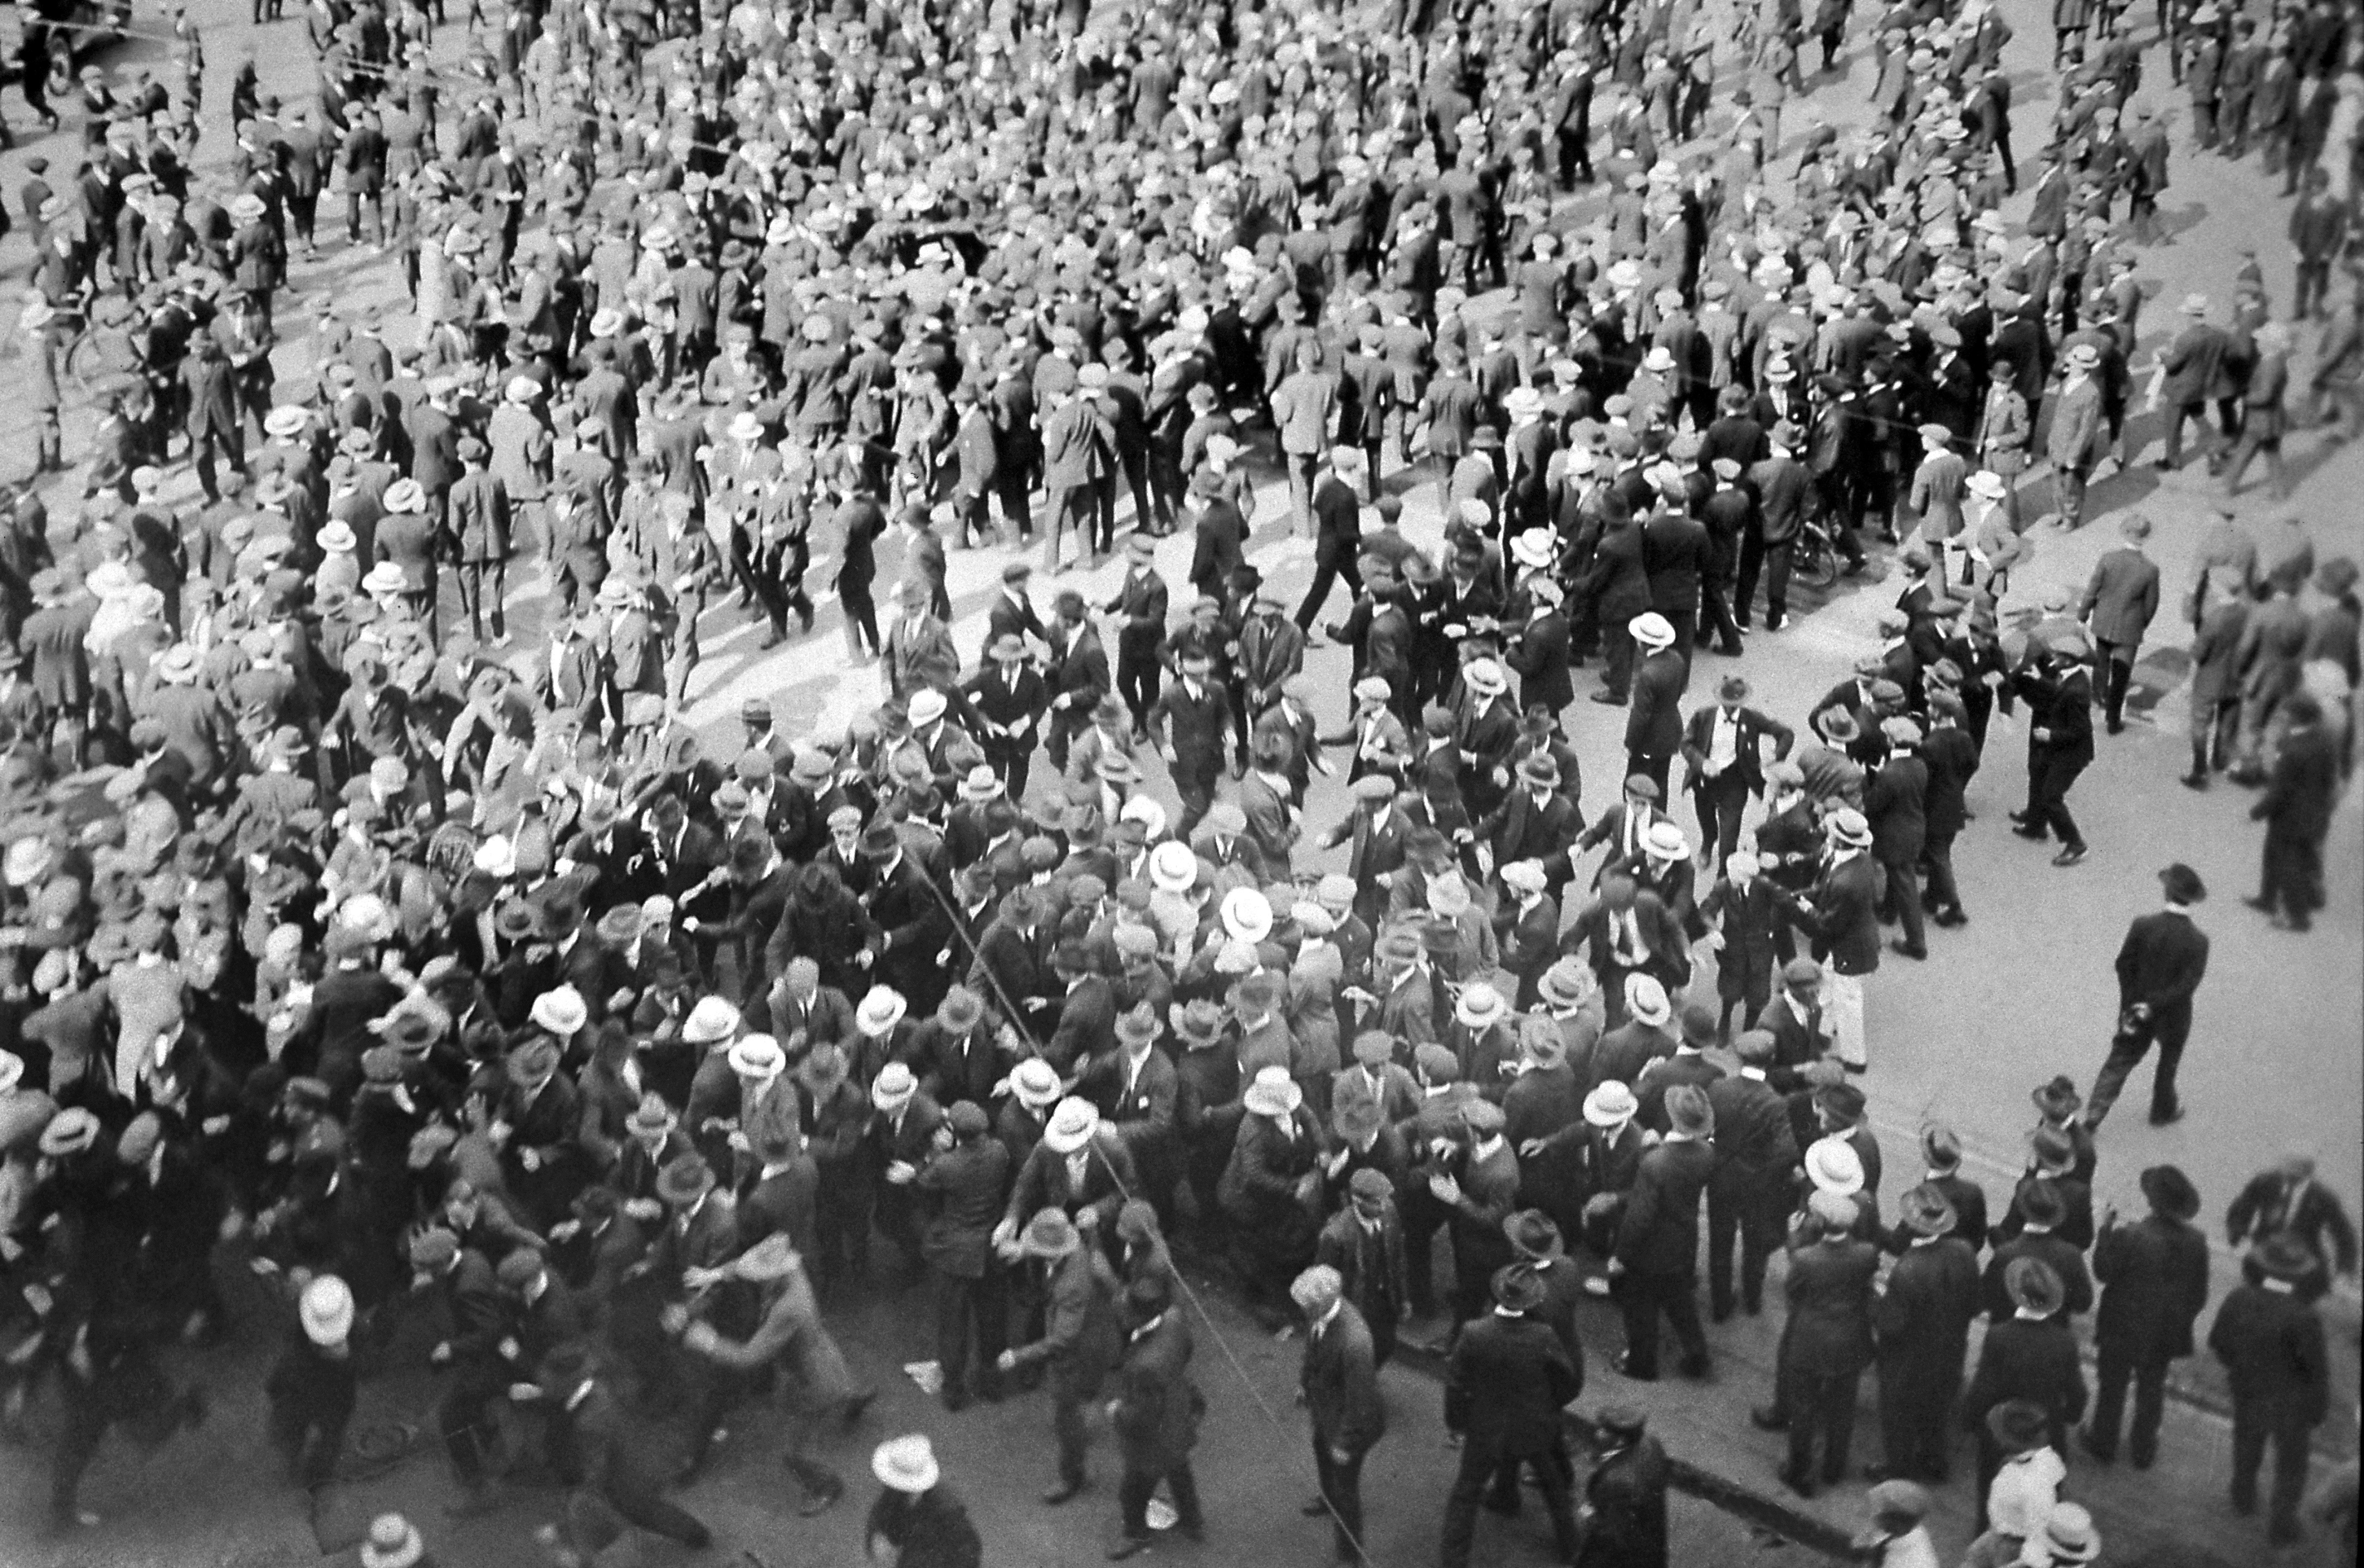 Groups clash on June 14, 1919, during the Winnipeg General Strike. (Foote collection/Archives of Manitoba)